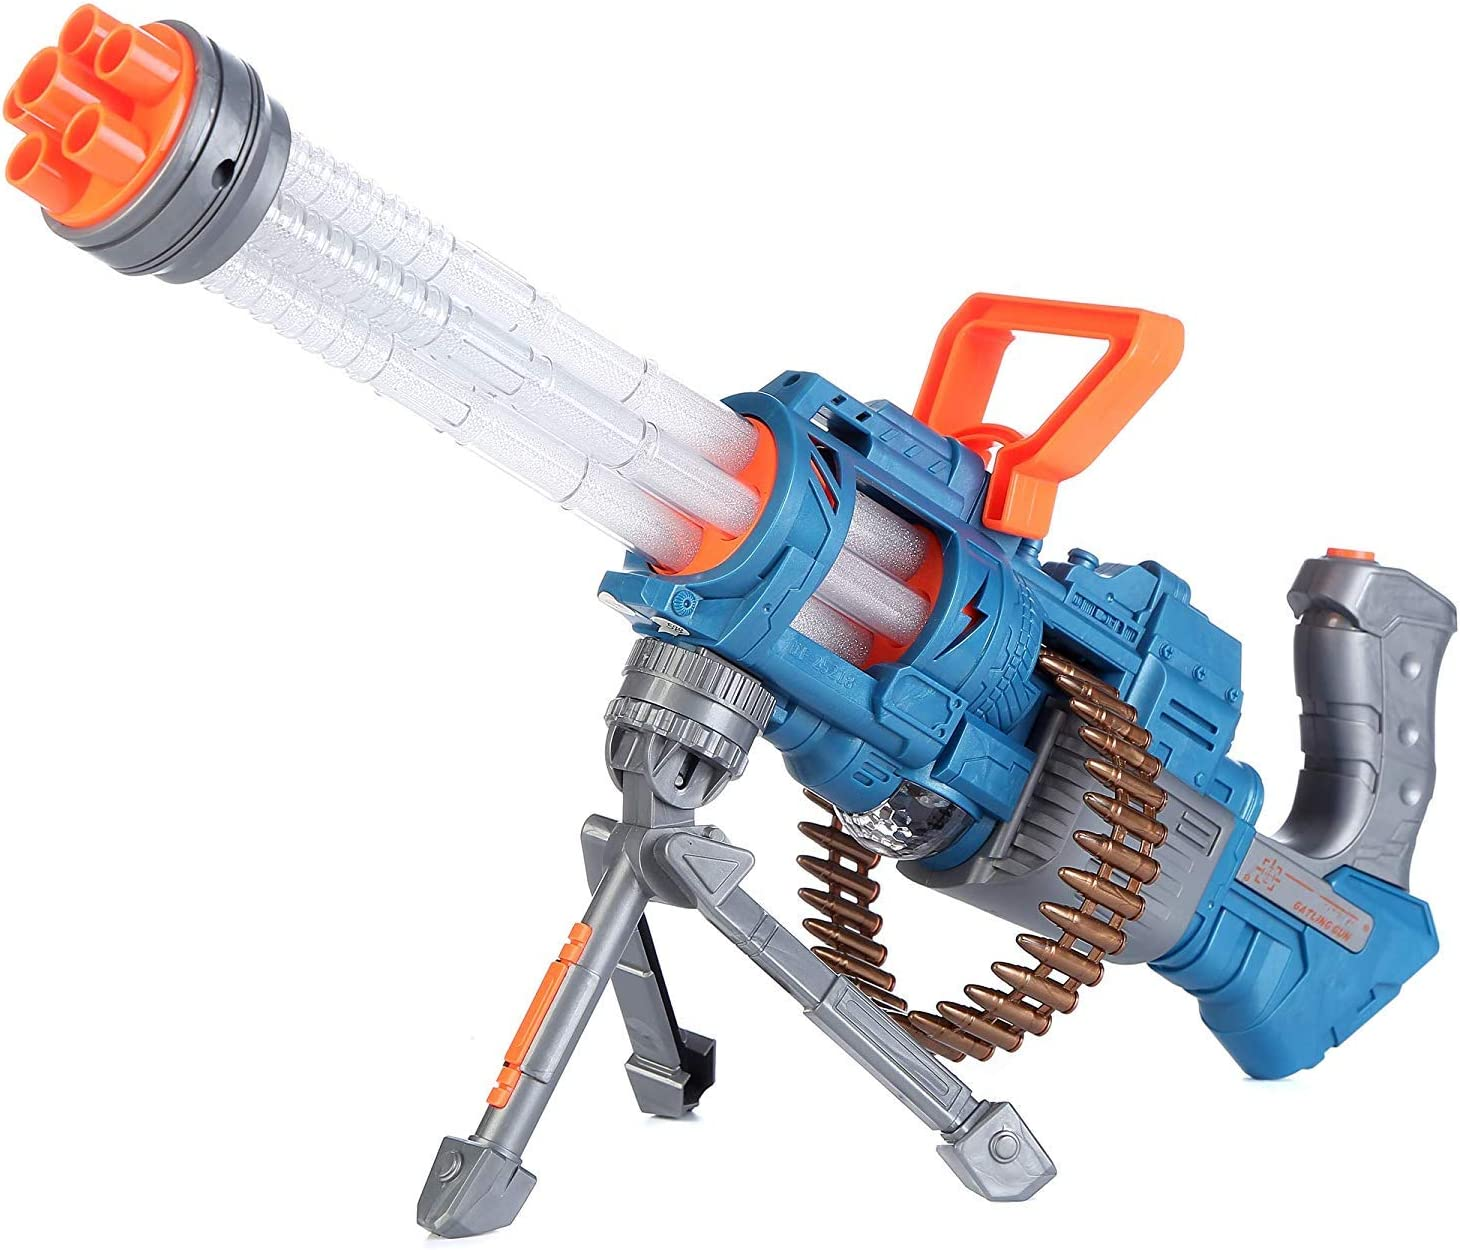 Thunder Fire Heavy Machine Toy Gatling Gun with LED Lights and Battle Sounds